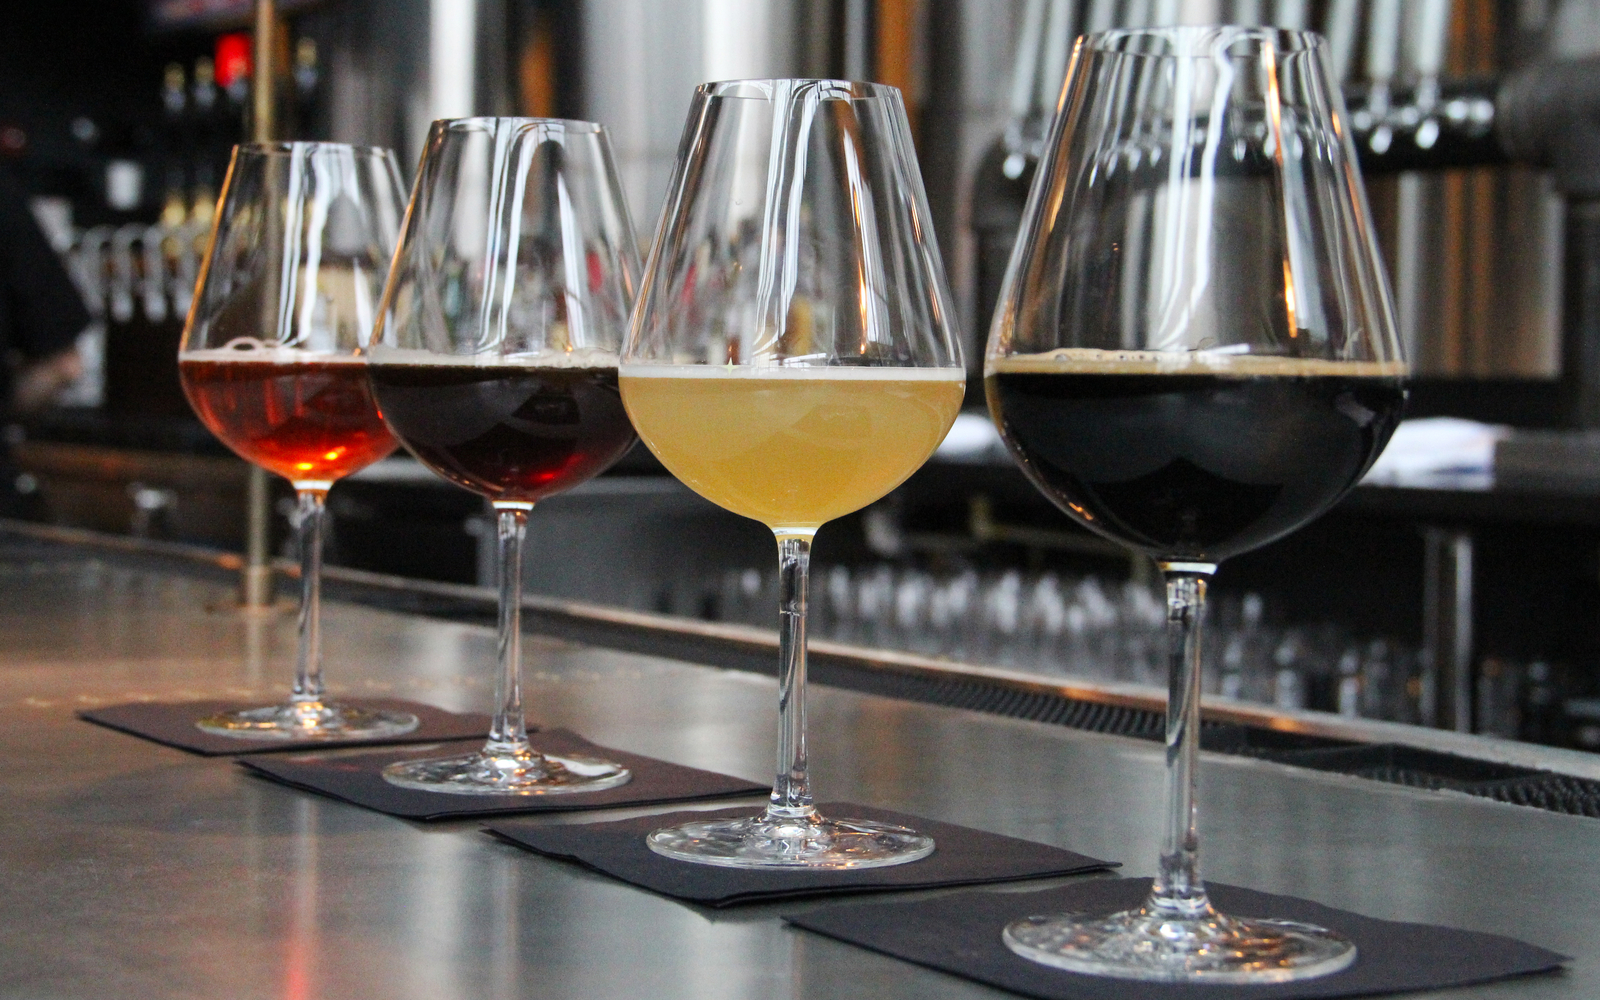 The Craft Beer Lover's Guide to Washington, D.C.'s Beer Week